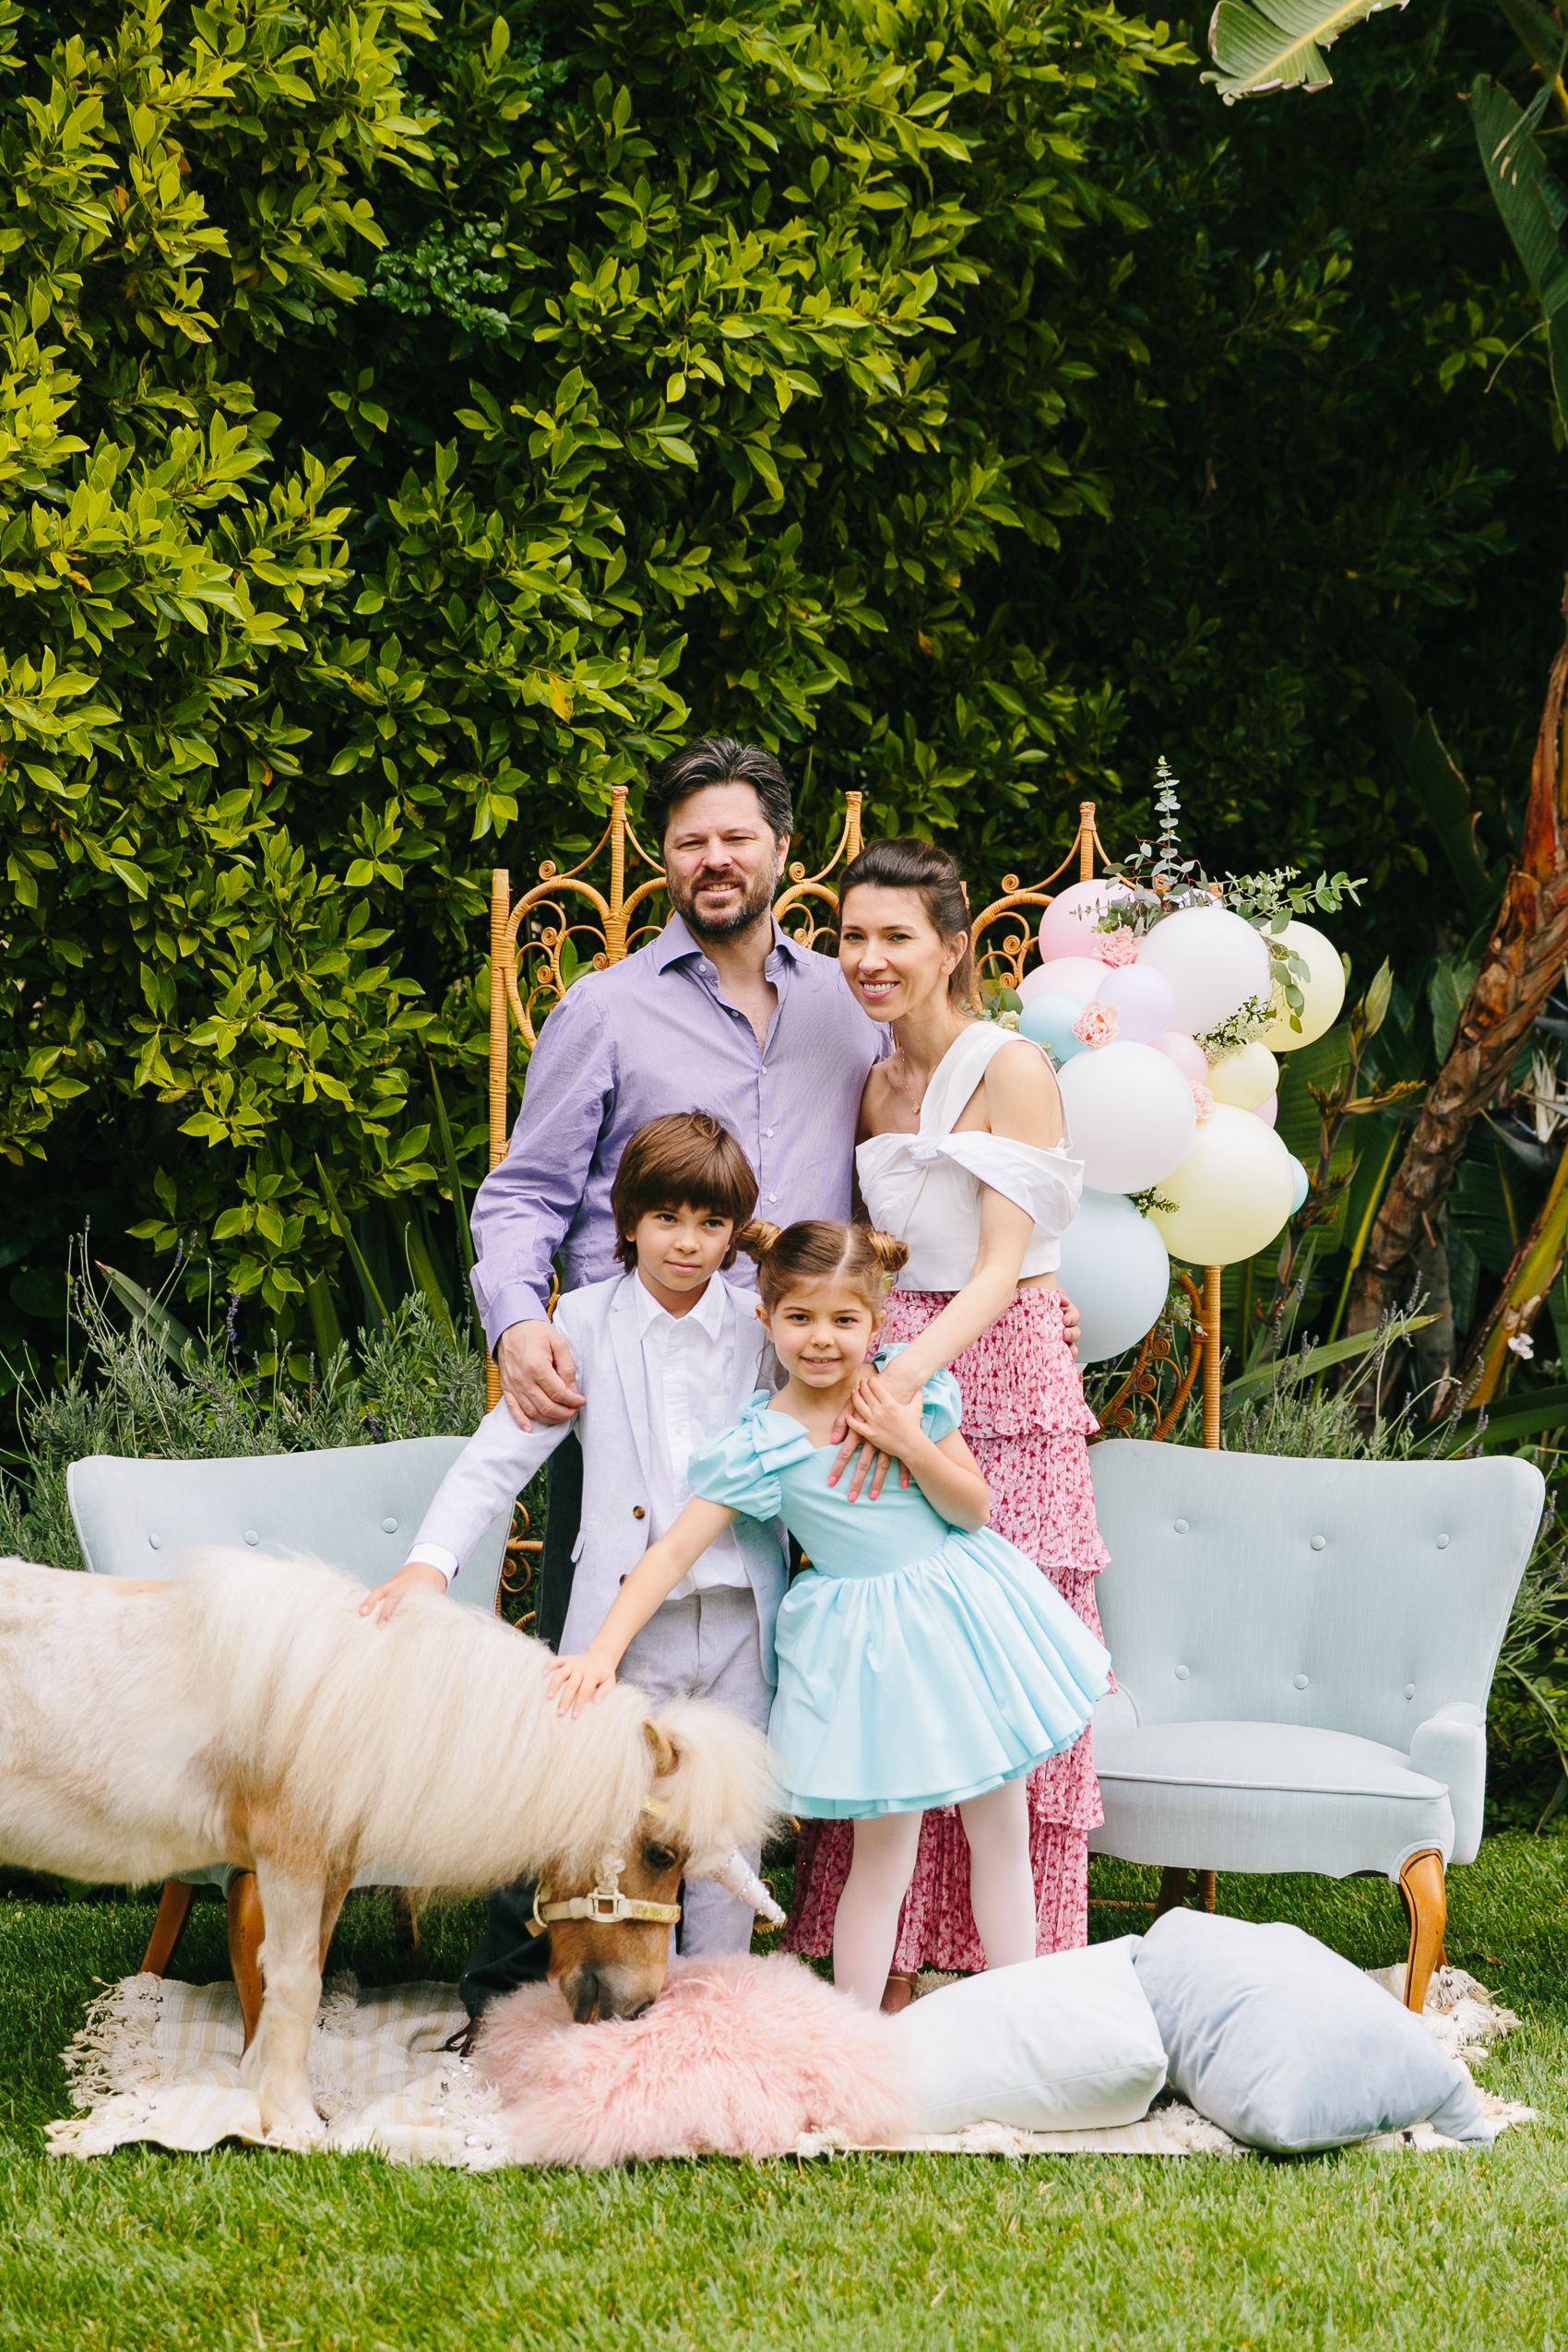 Los_Angeles_Family_Photographer_Luxury_Childrens_Party_Beverly_Hills_Unicorn_Birthday_Party-0314.jpg